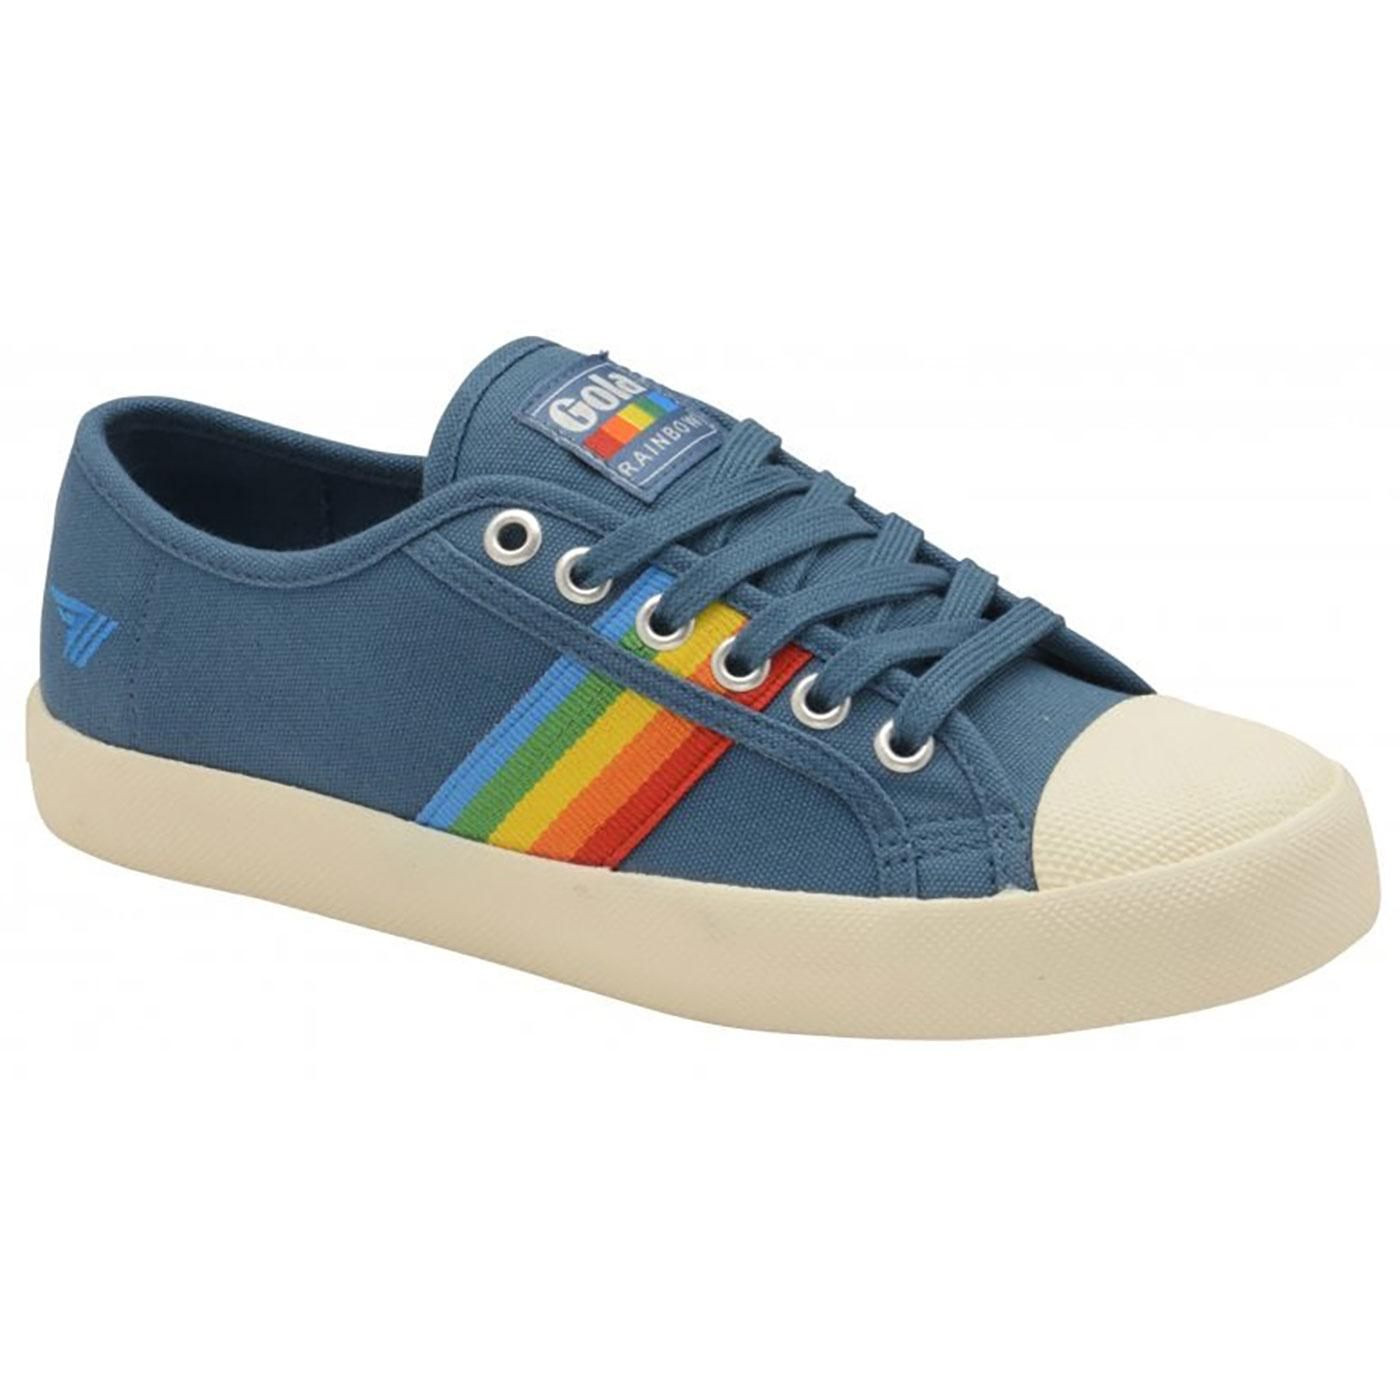 Coaster Rainbow GOLA Retro Canvas Trainers PETROL